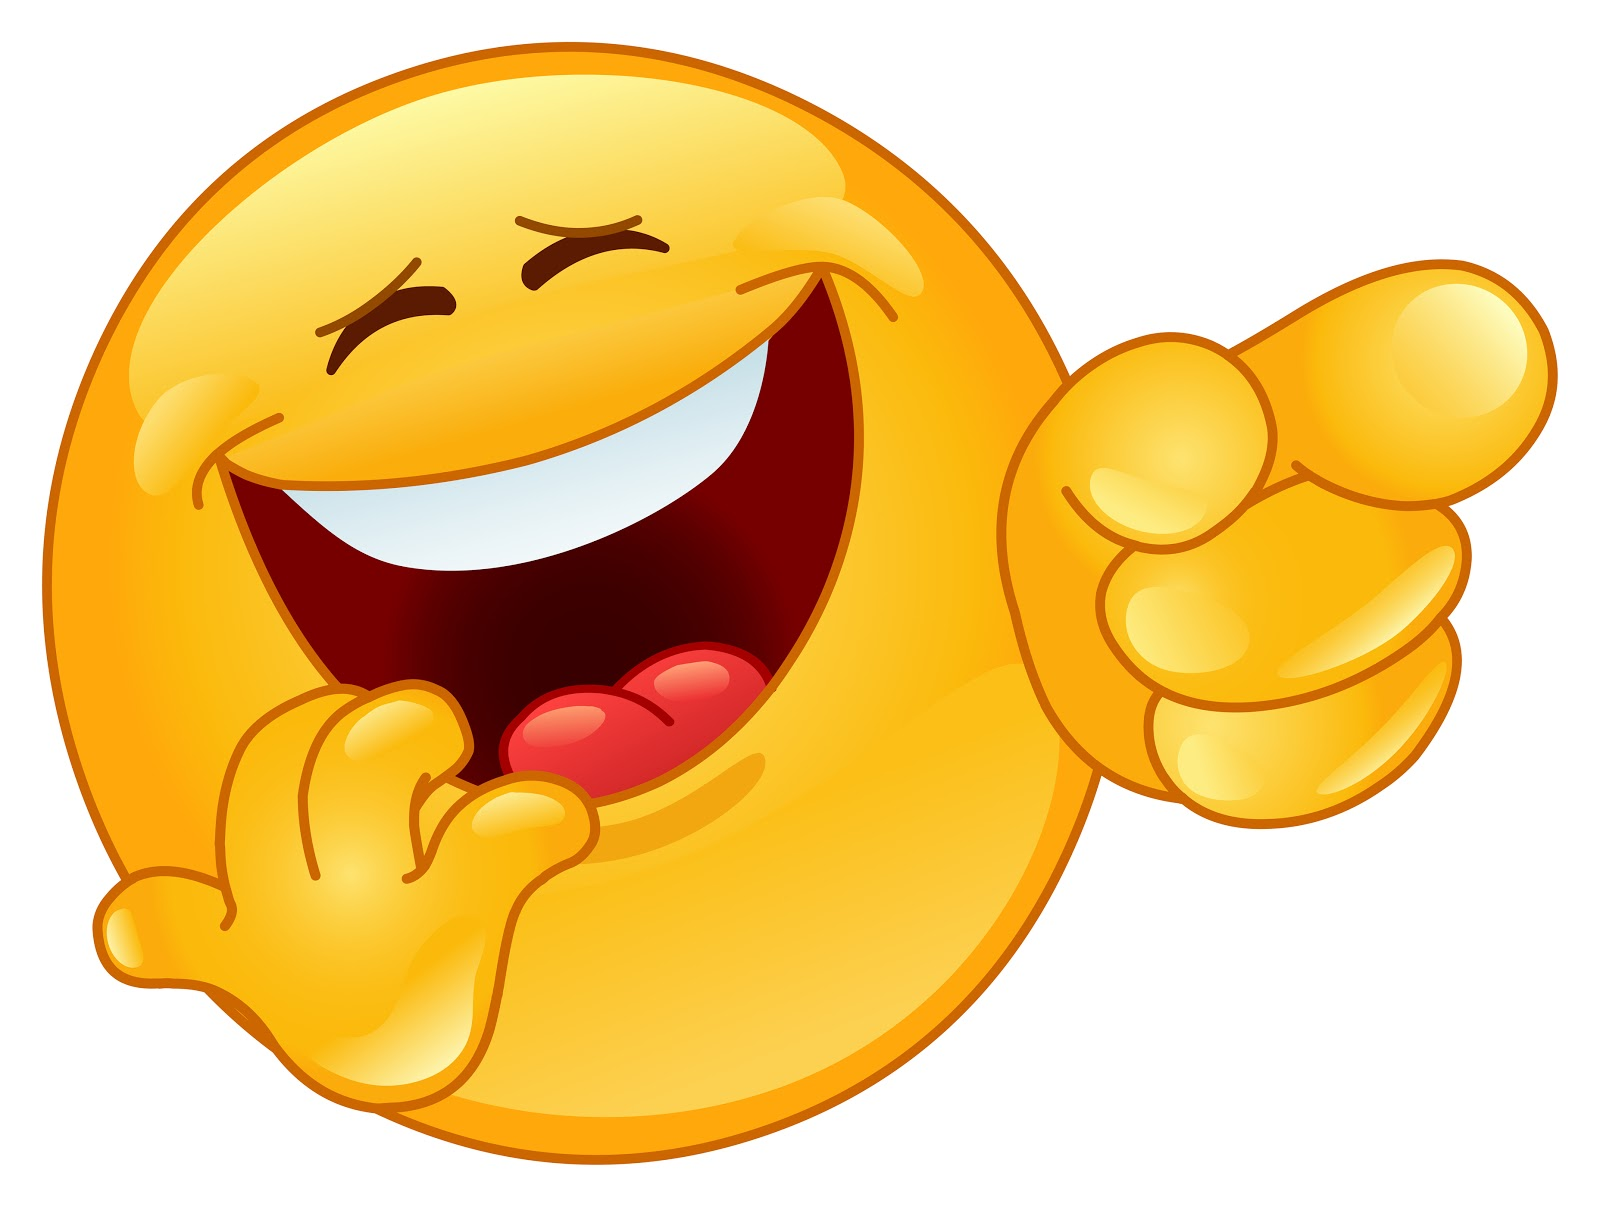 lady laughing clipart clipart suggest clip art laughing hard clip art laughing people